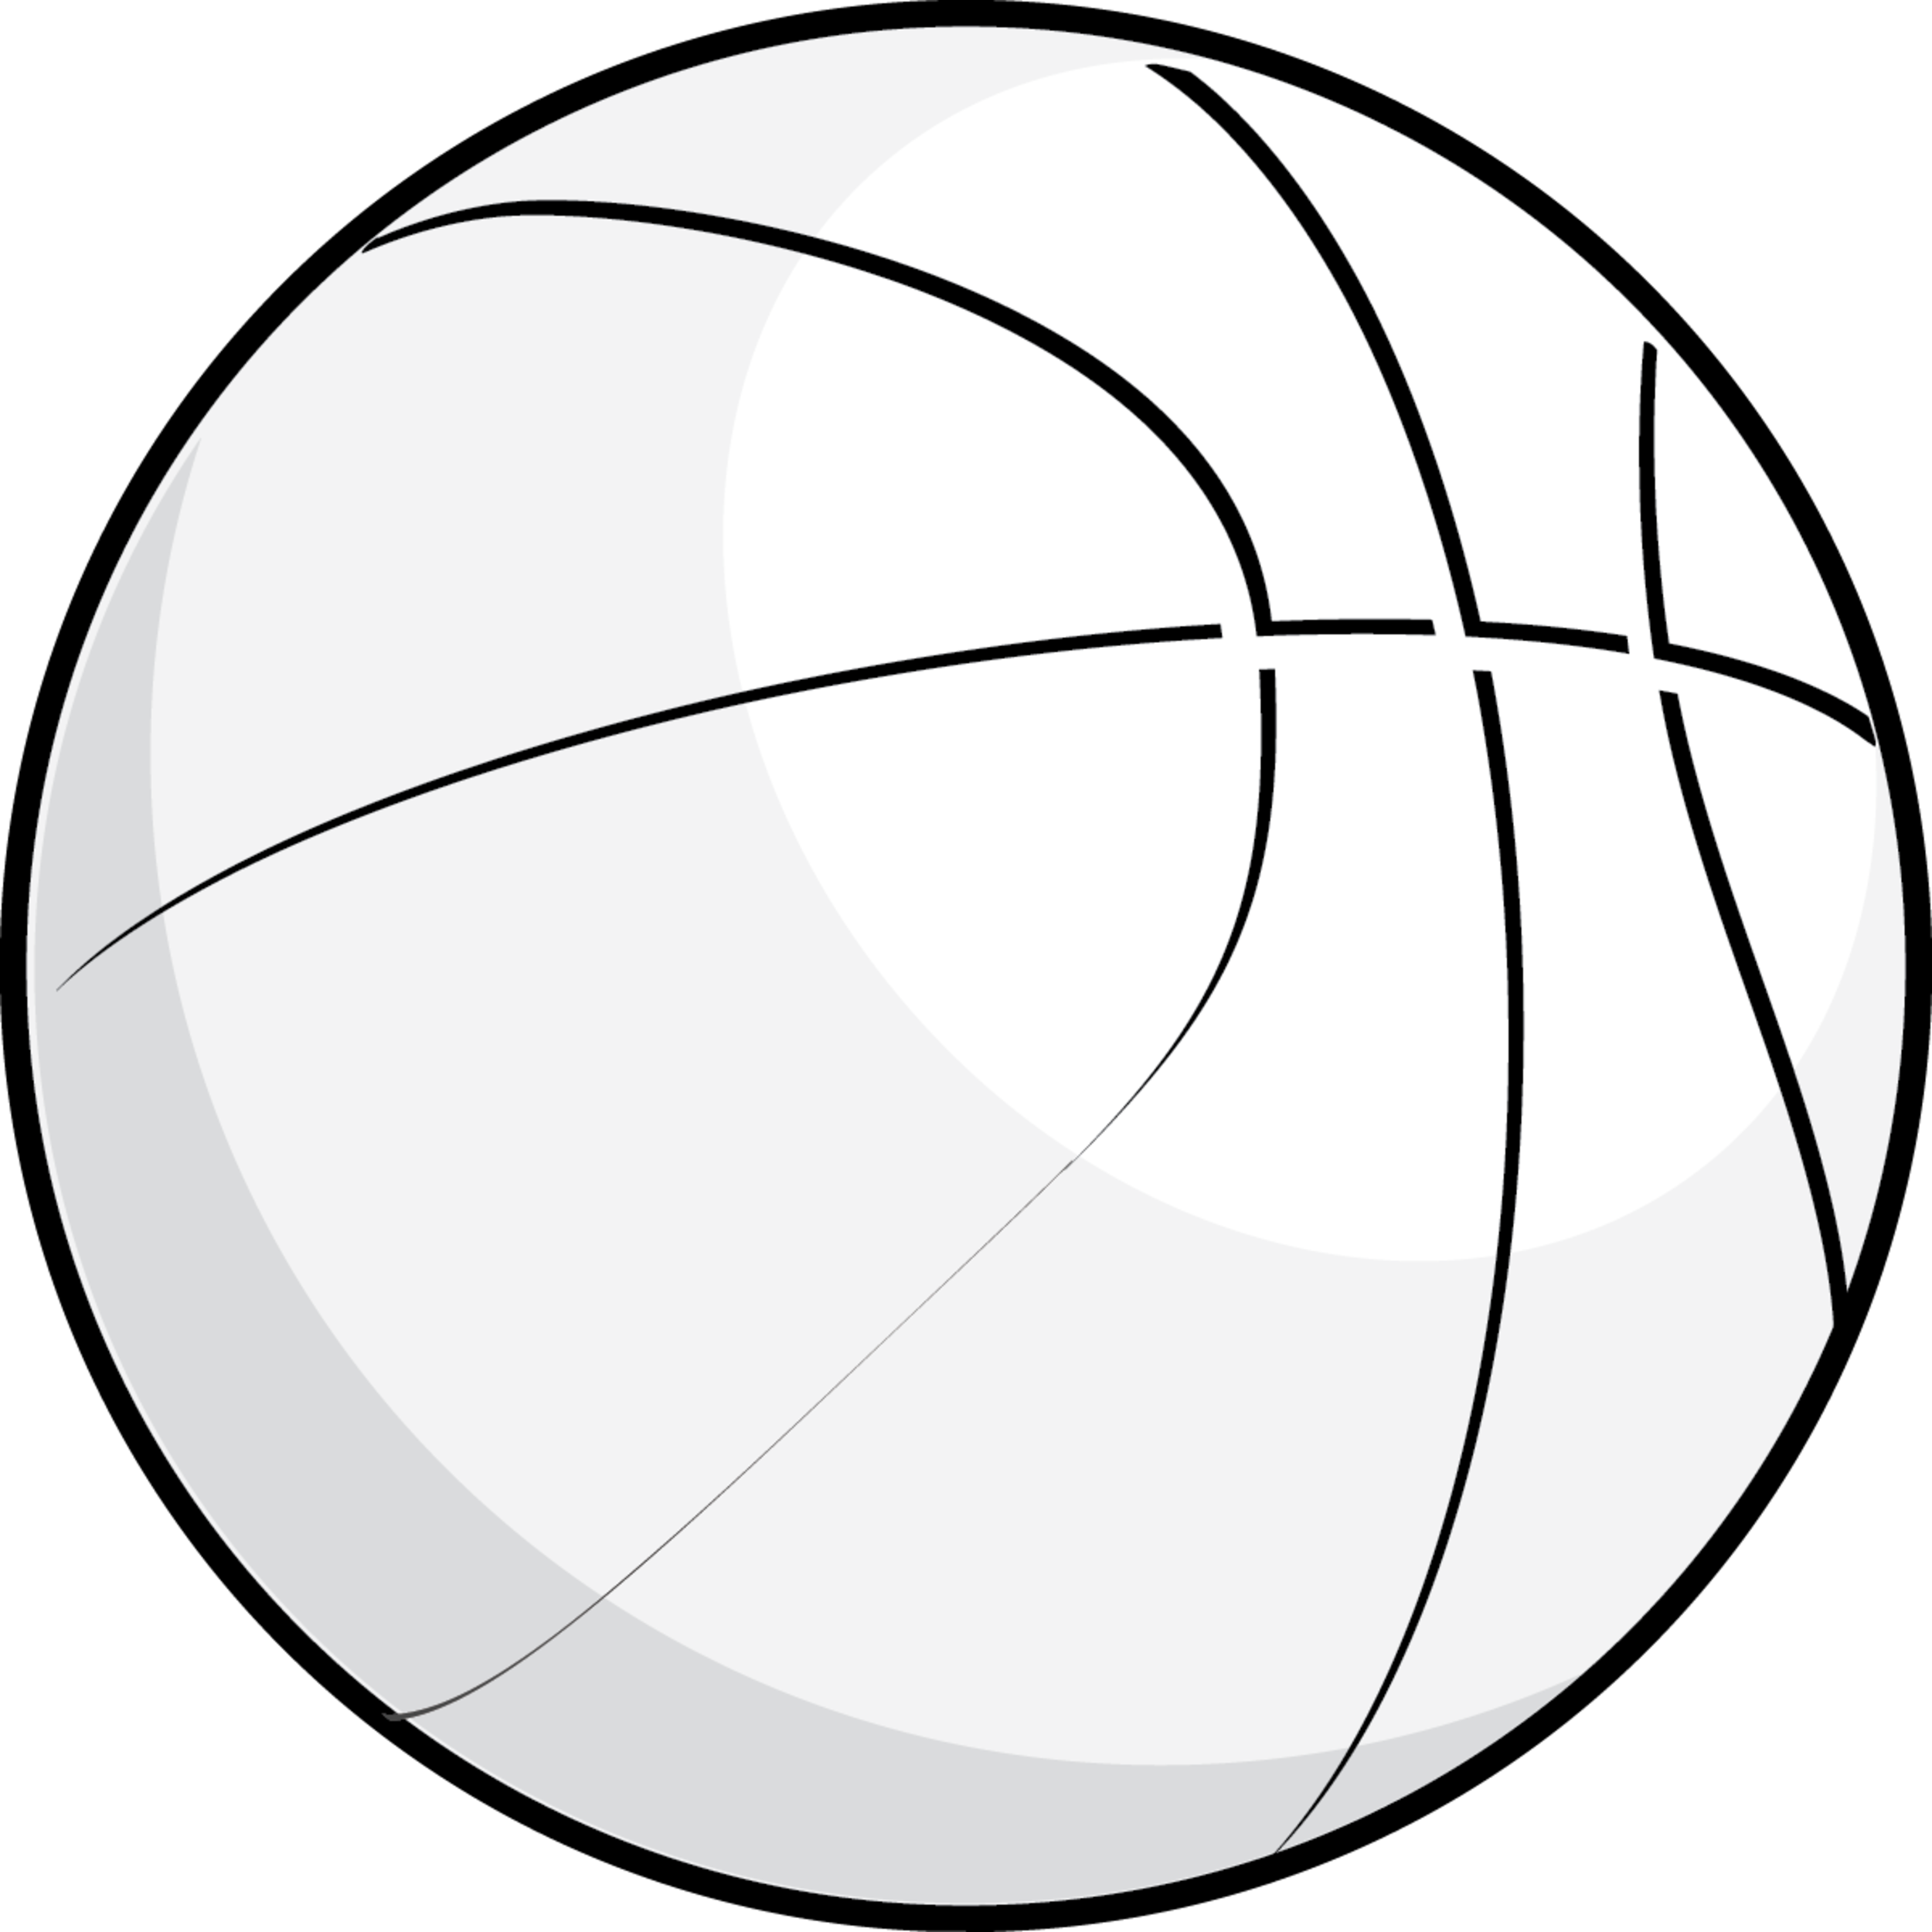 2500x2500 Free Vector Graphic Basketball Orange Clipart Rubber Free Image